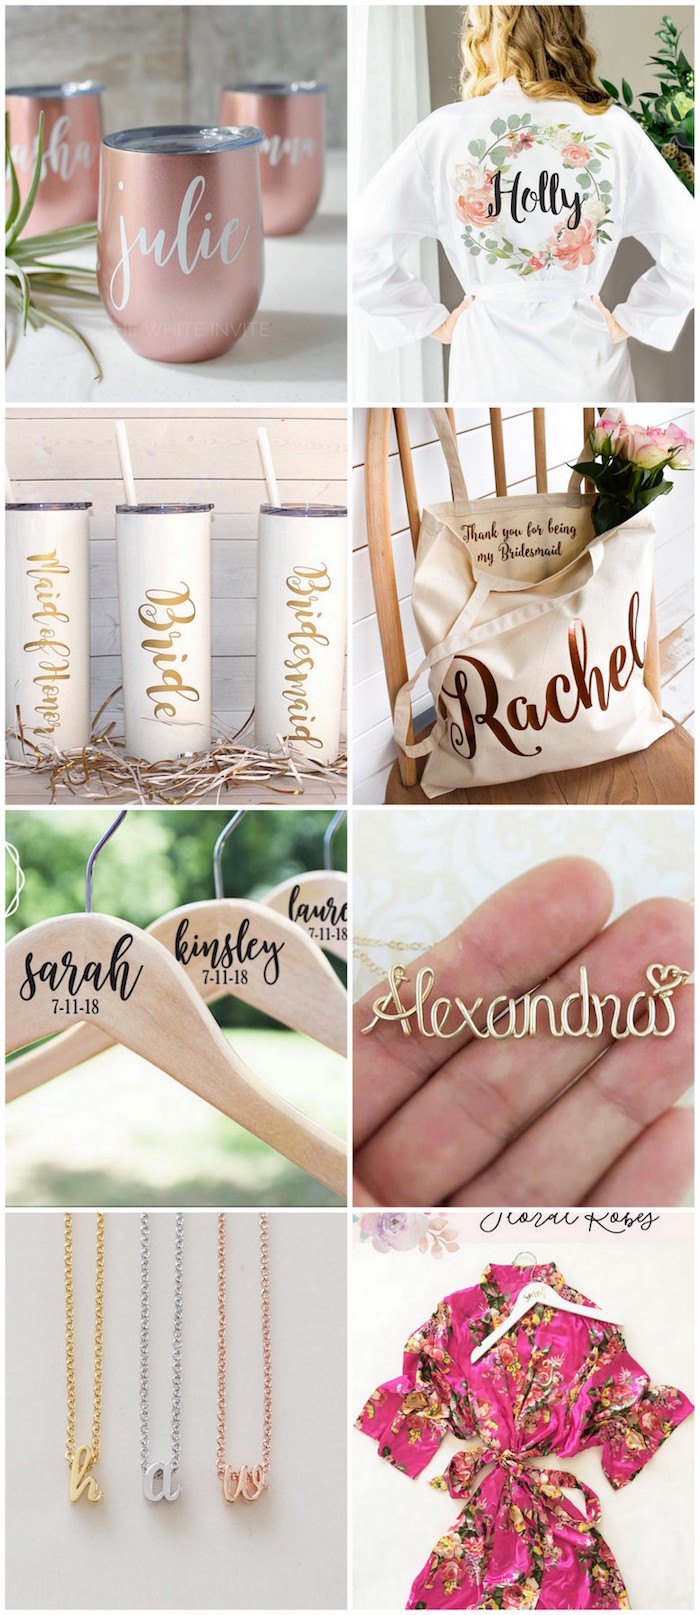 20+ Totally Adorbs Bridesmaids Gifts: Ideas To Spoil Your Girls!